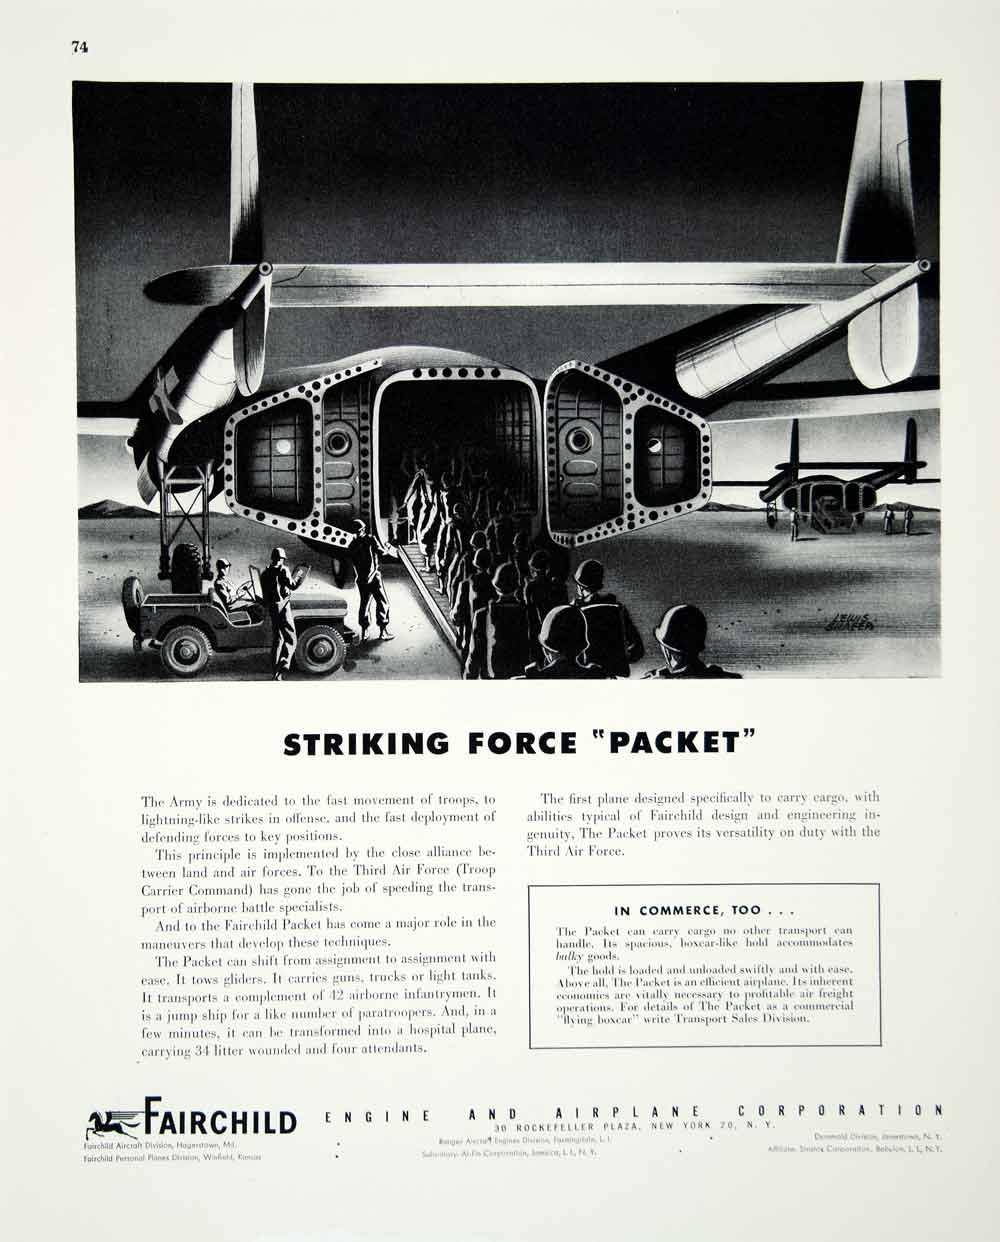 1946 Ad Fairchild Engine Airplane Corporation Travel Transportation Packet FTM1